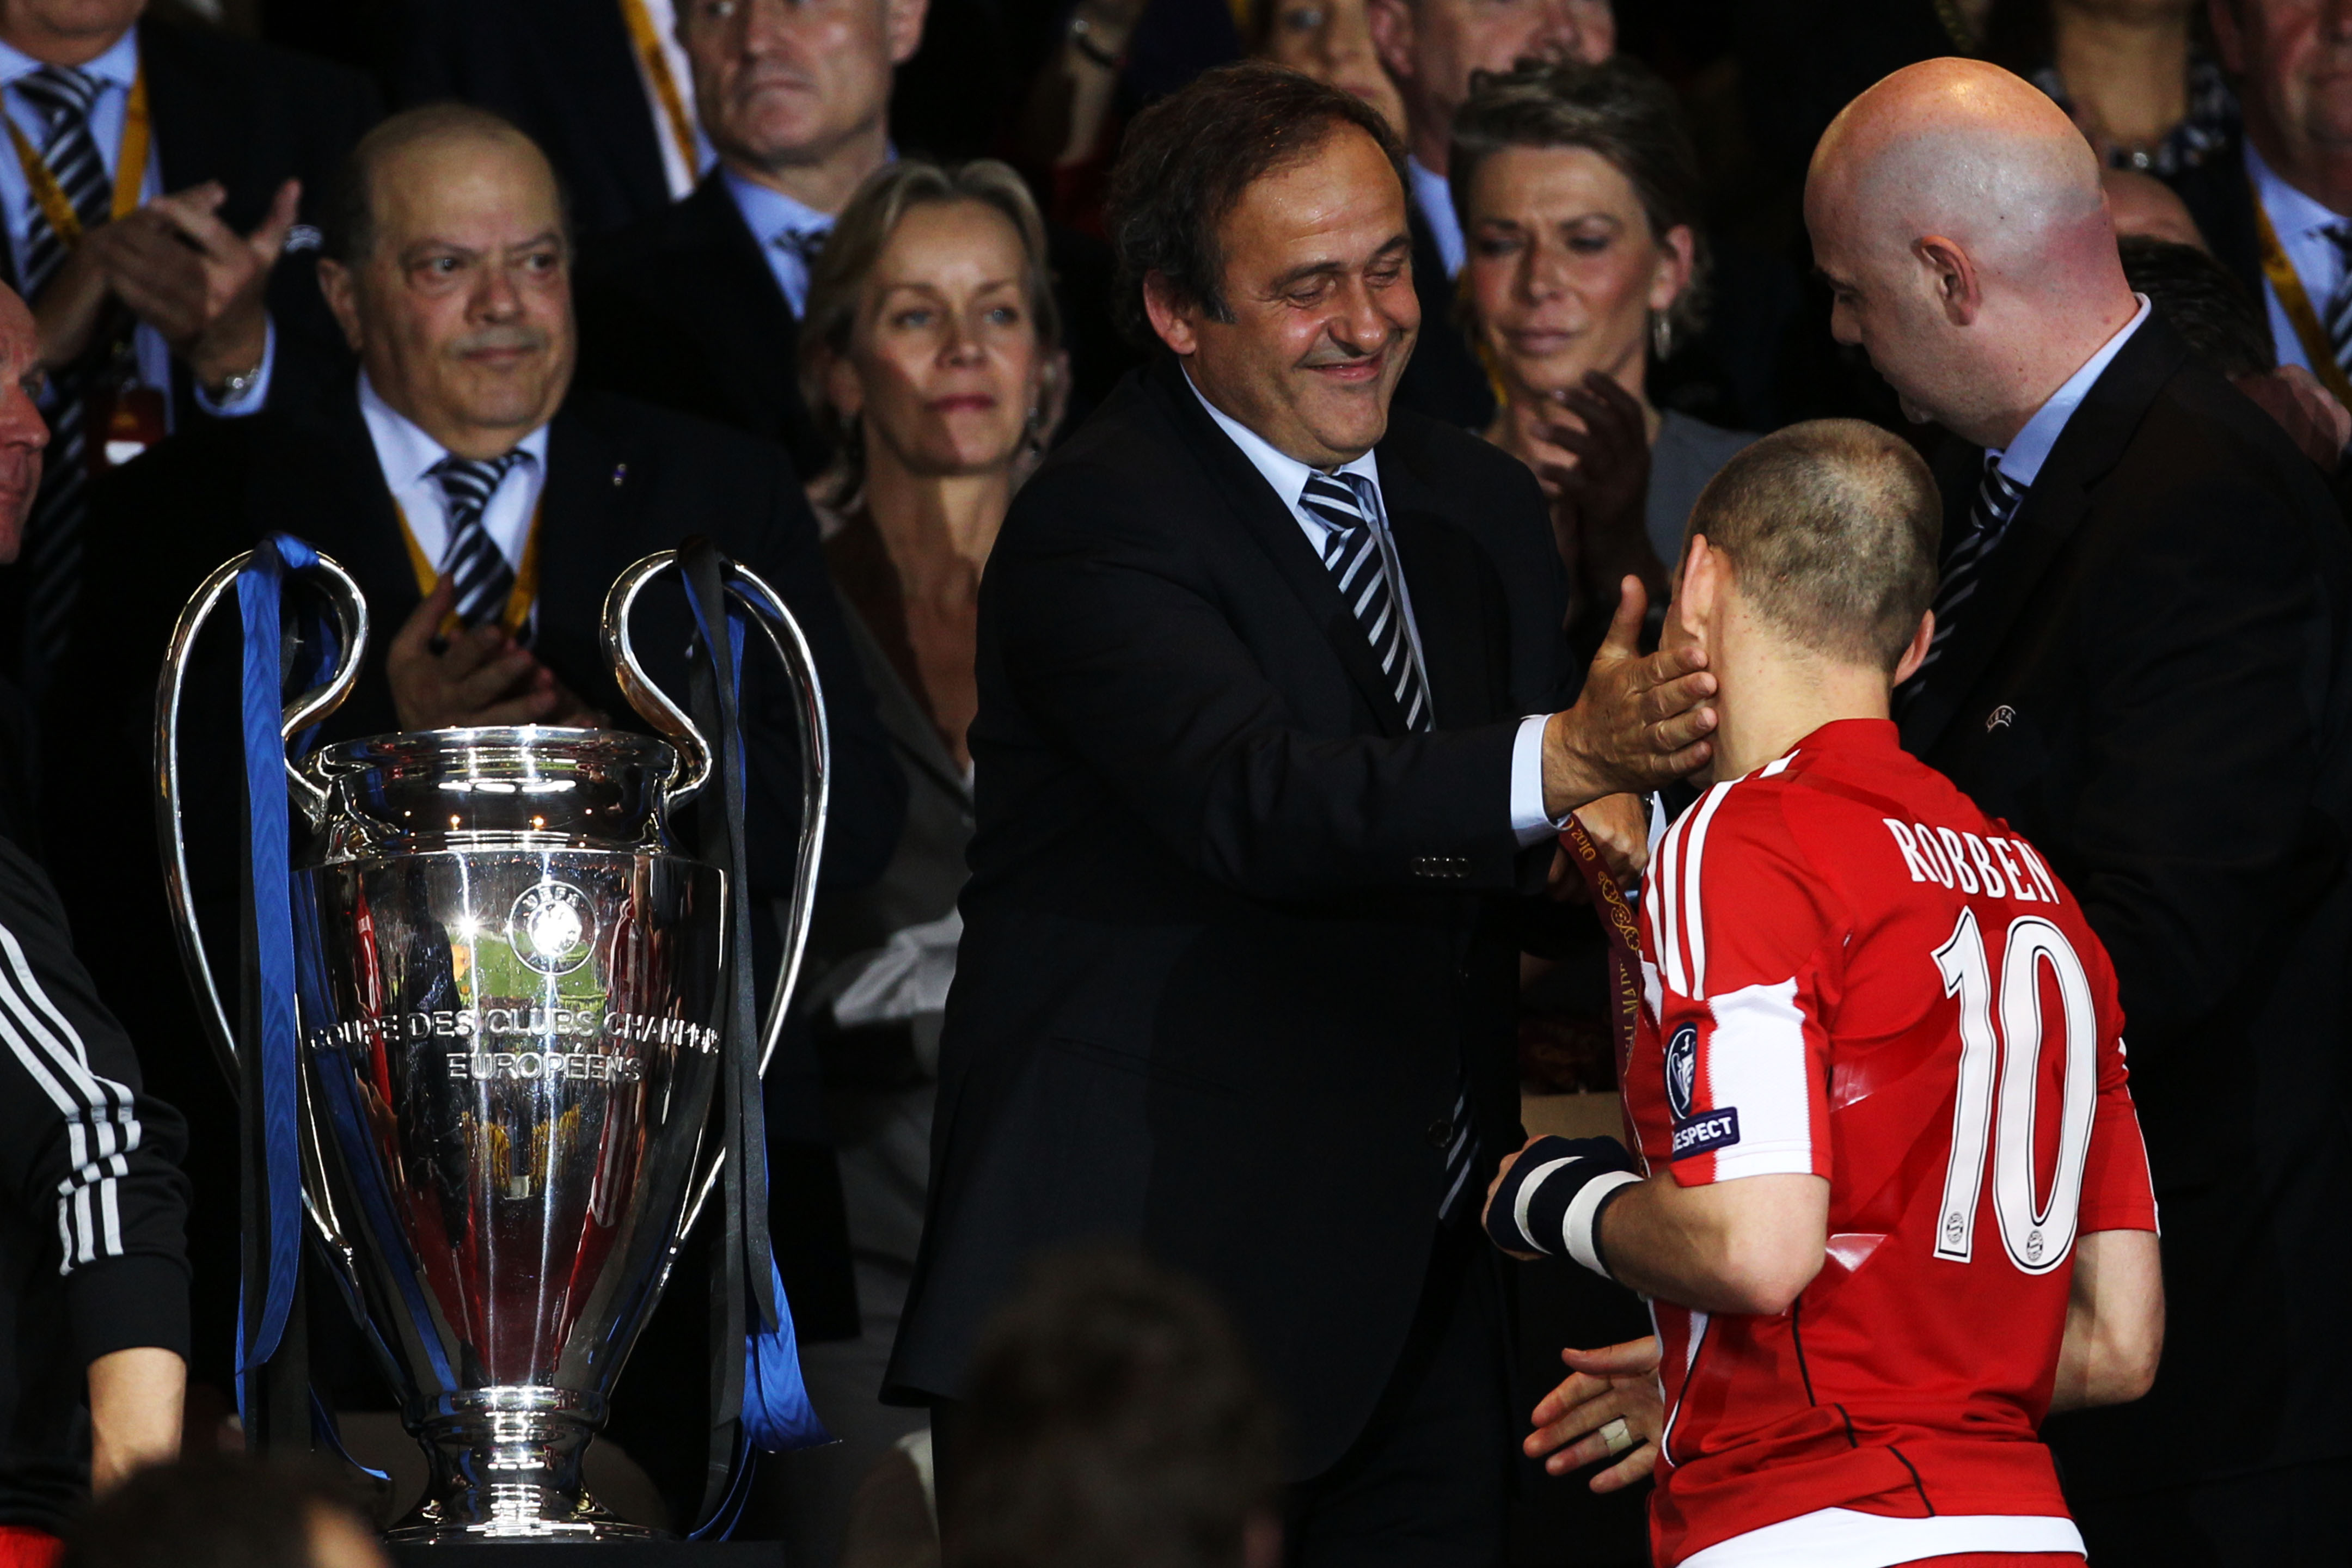 MADRID, SPAIN - MAY 22: Arjen Robben of Bayern Muenchen is comforted by UEFA president Michel Platini after their defeat at the end of the UEFA Champions League Final match between FC Bayern Muenchen and Inter Milan at the Estadio Santiago Bernabeu on May